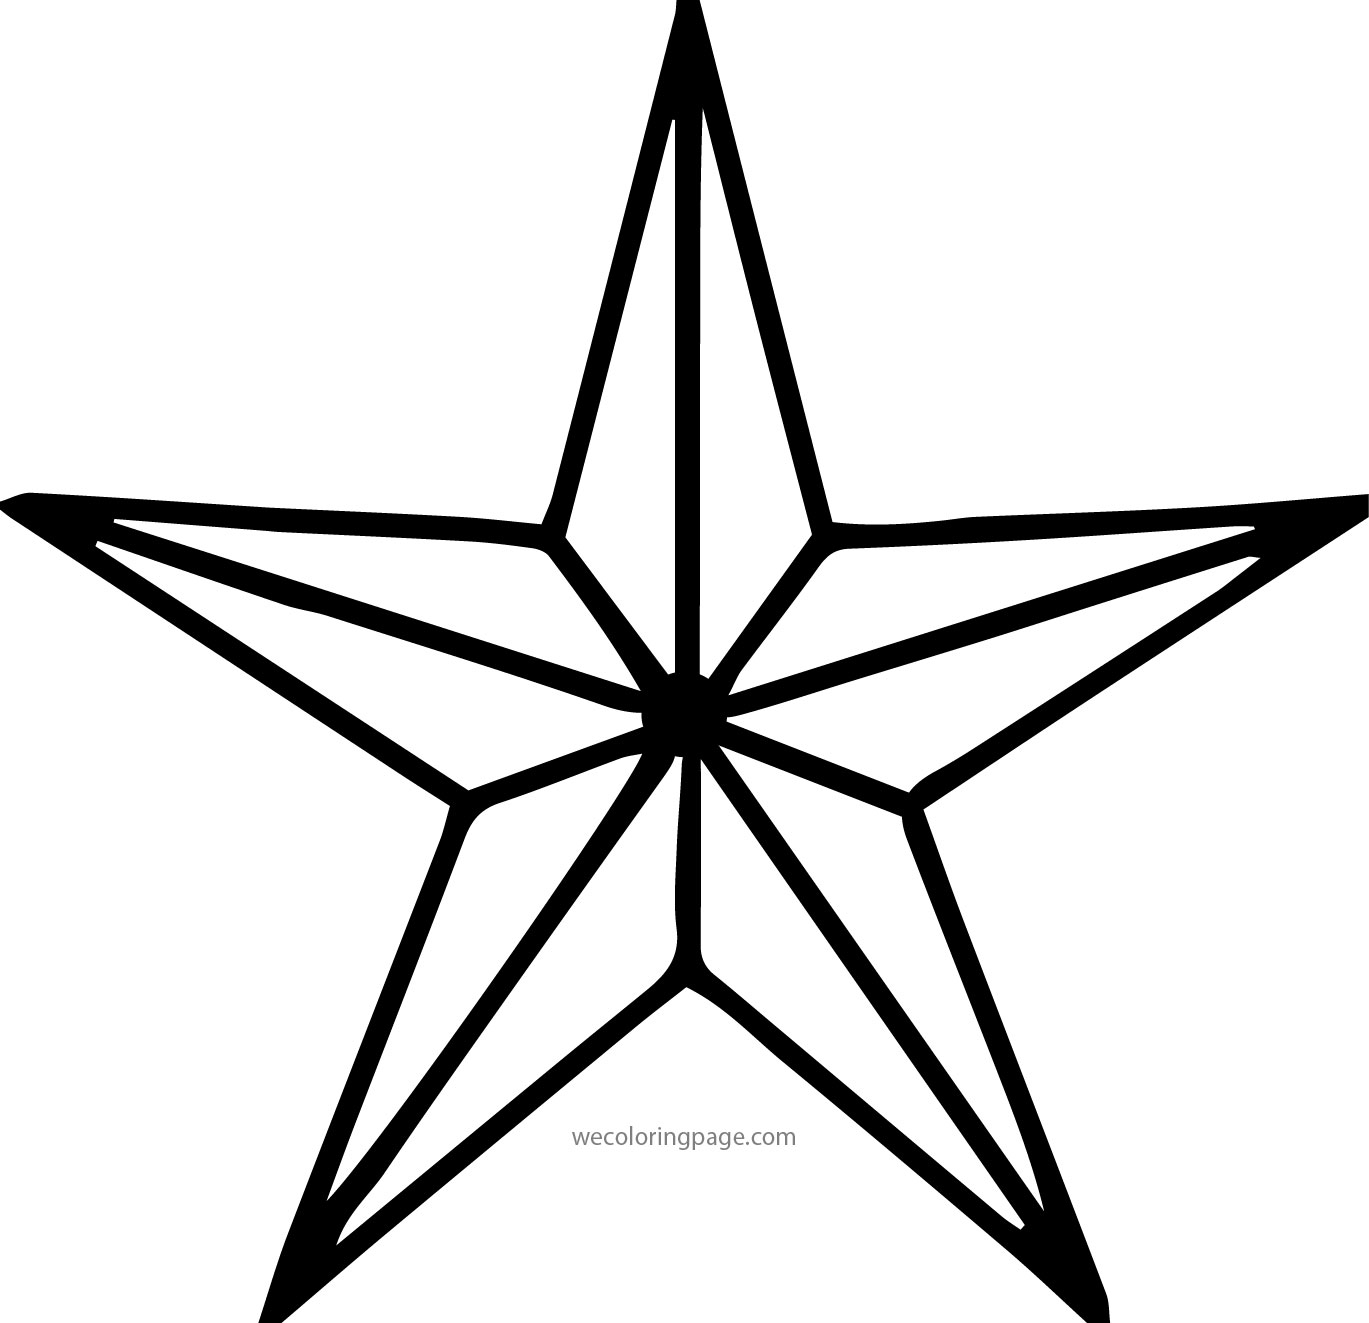 diamond star coloring page. Black Bedroom Furniture Sets. Home Design Ideas